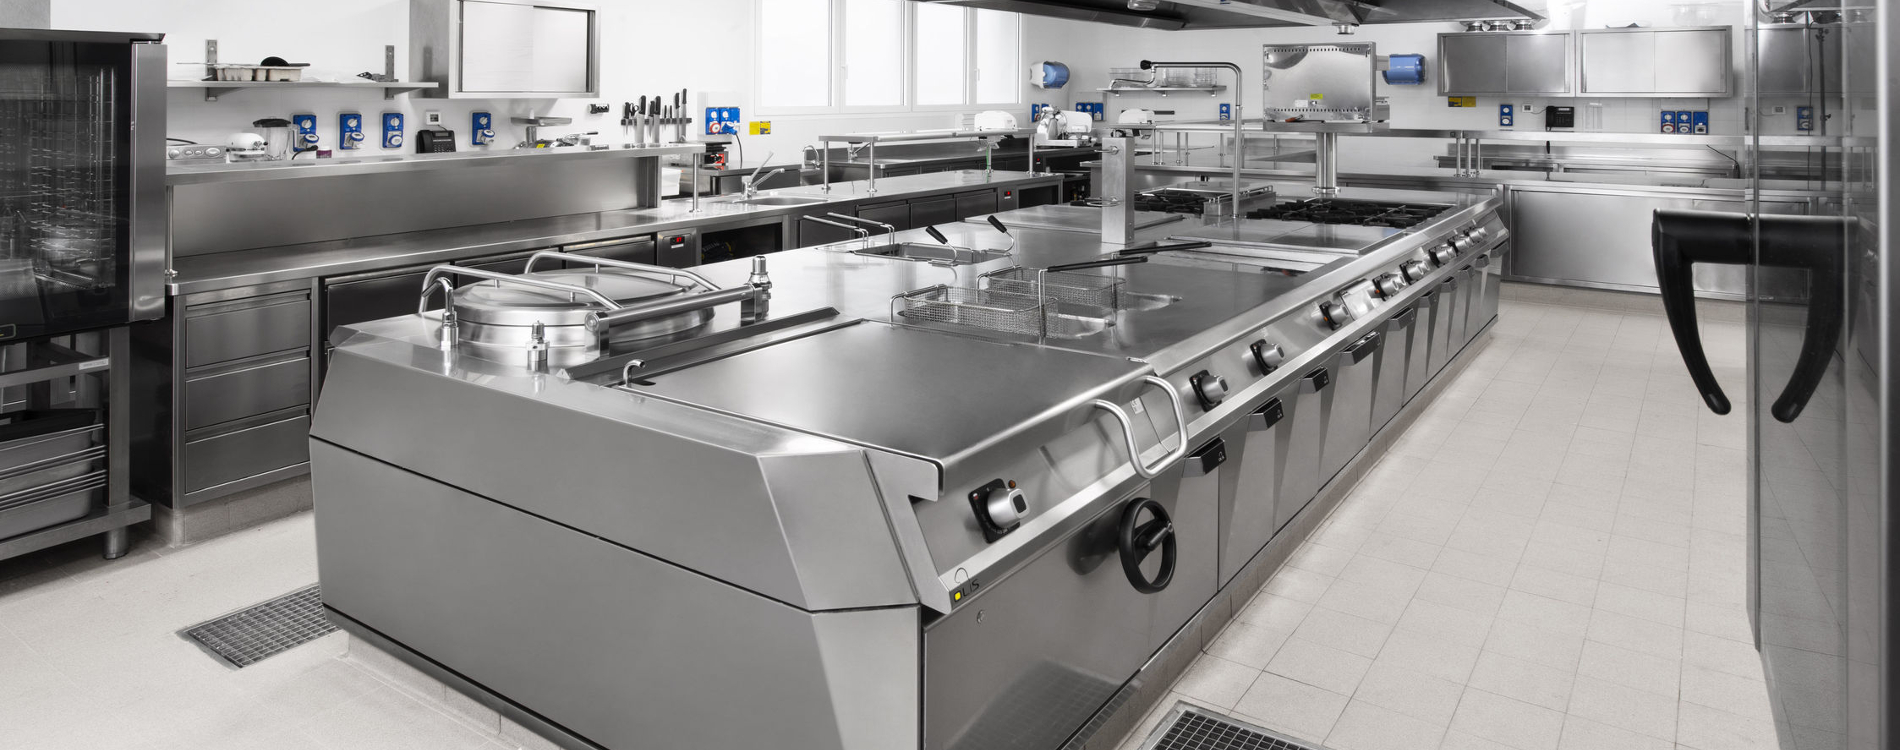 Commercial Kitchens and Bar Equipment